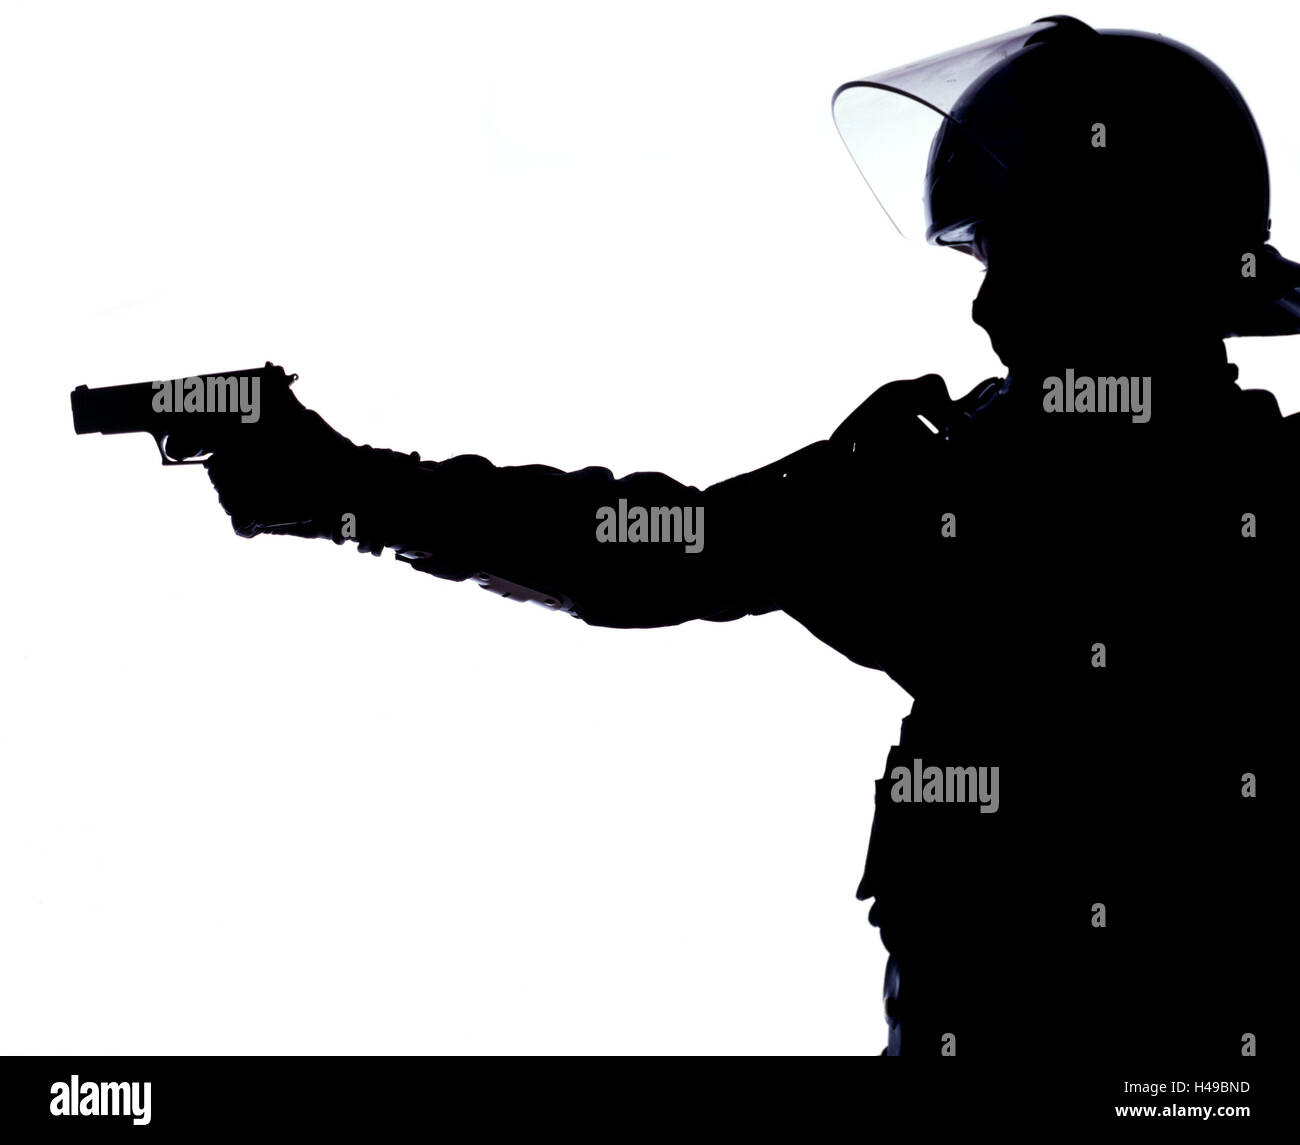 Policeman, protective clothing, shooting practise, aim, portrait, side view, silhouette, police, occupation, man, - Stock Image